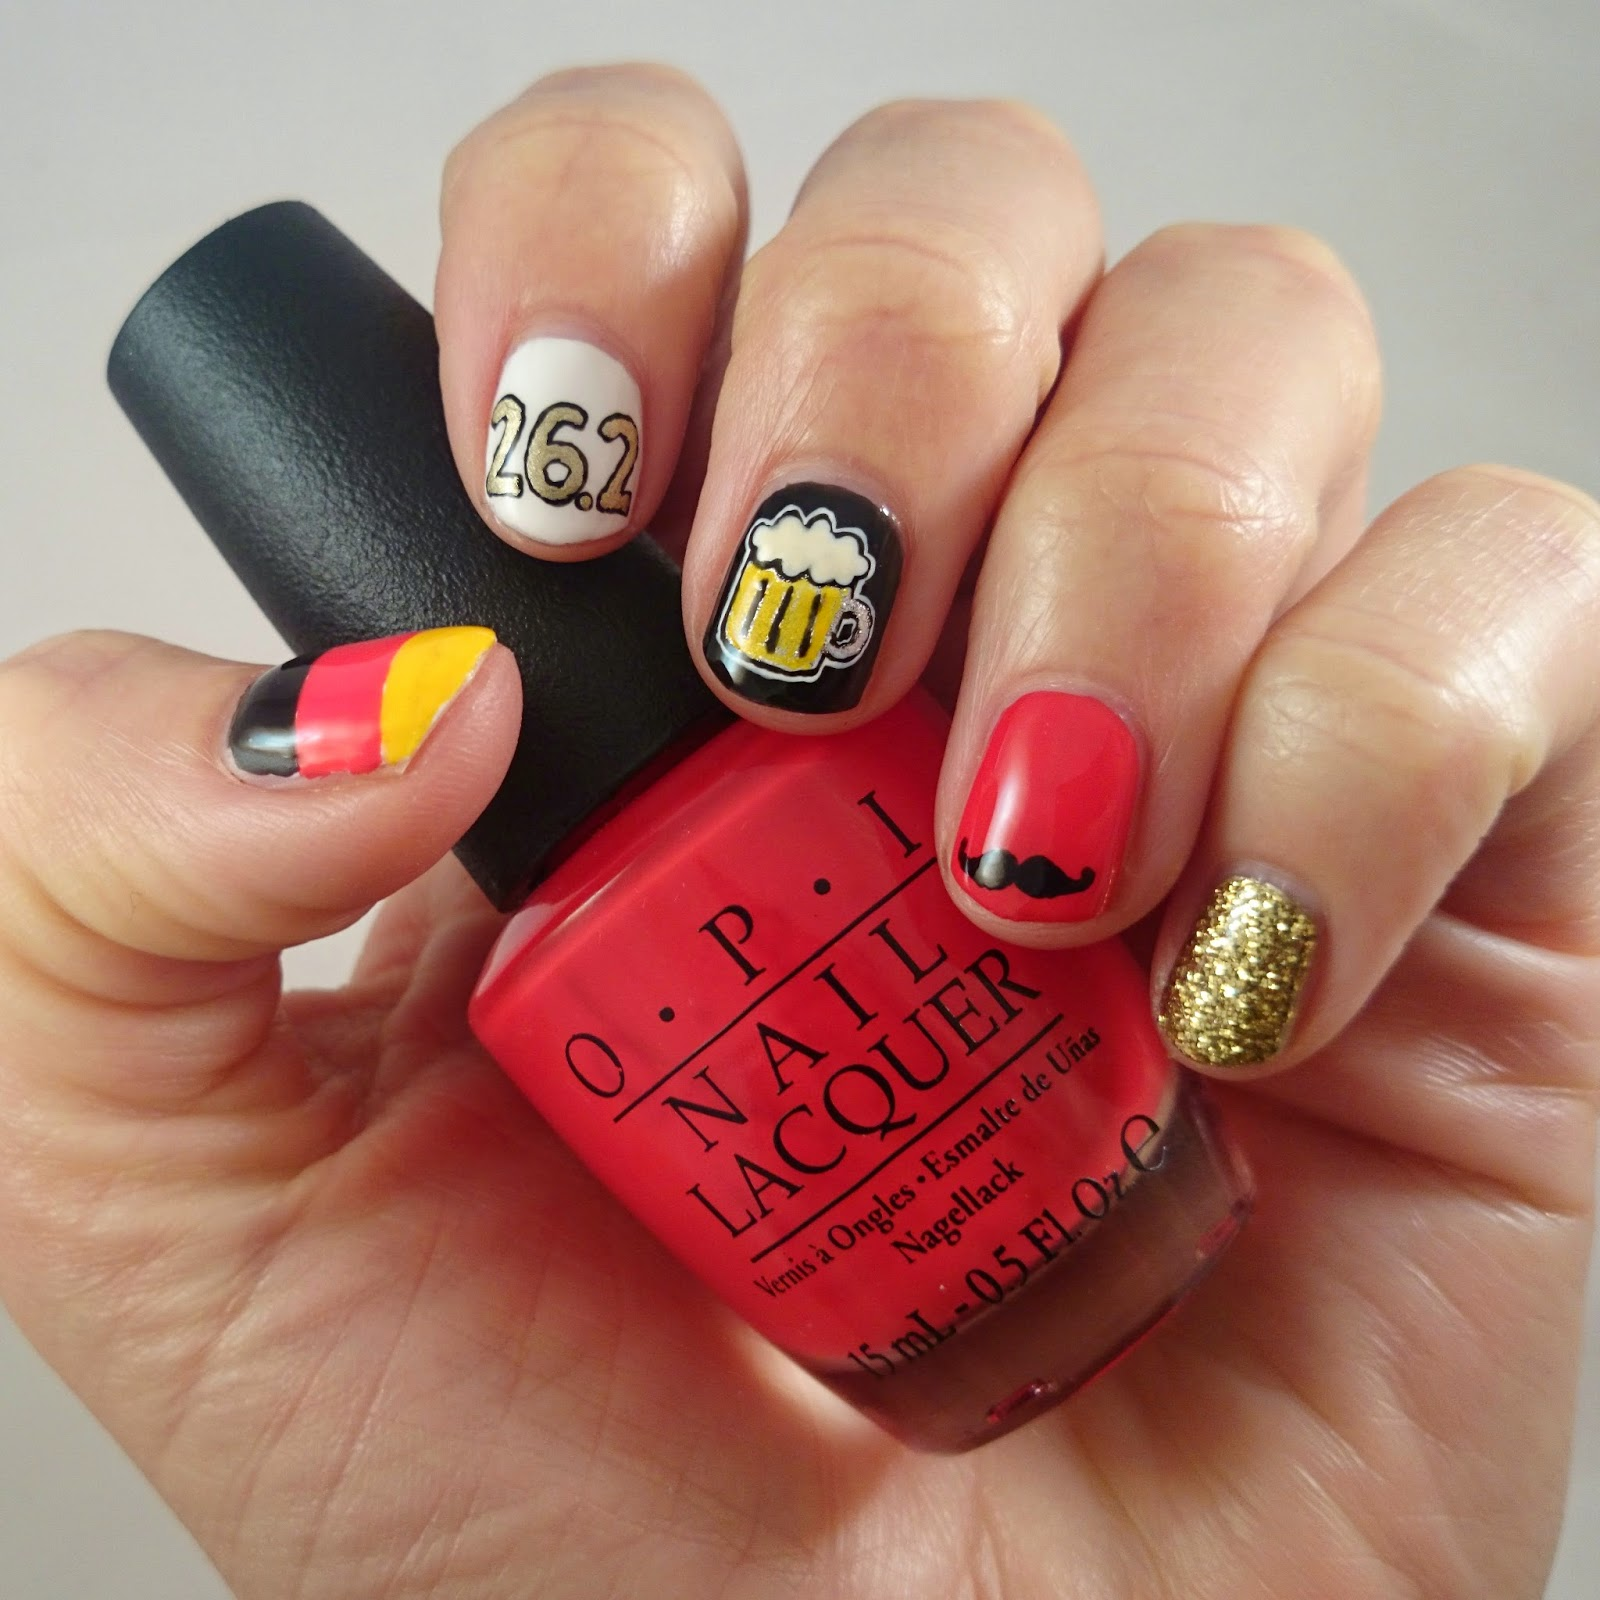 Some German Themed Nails